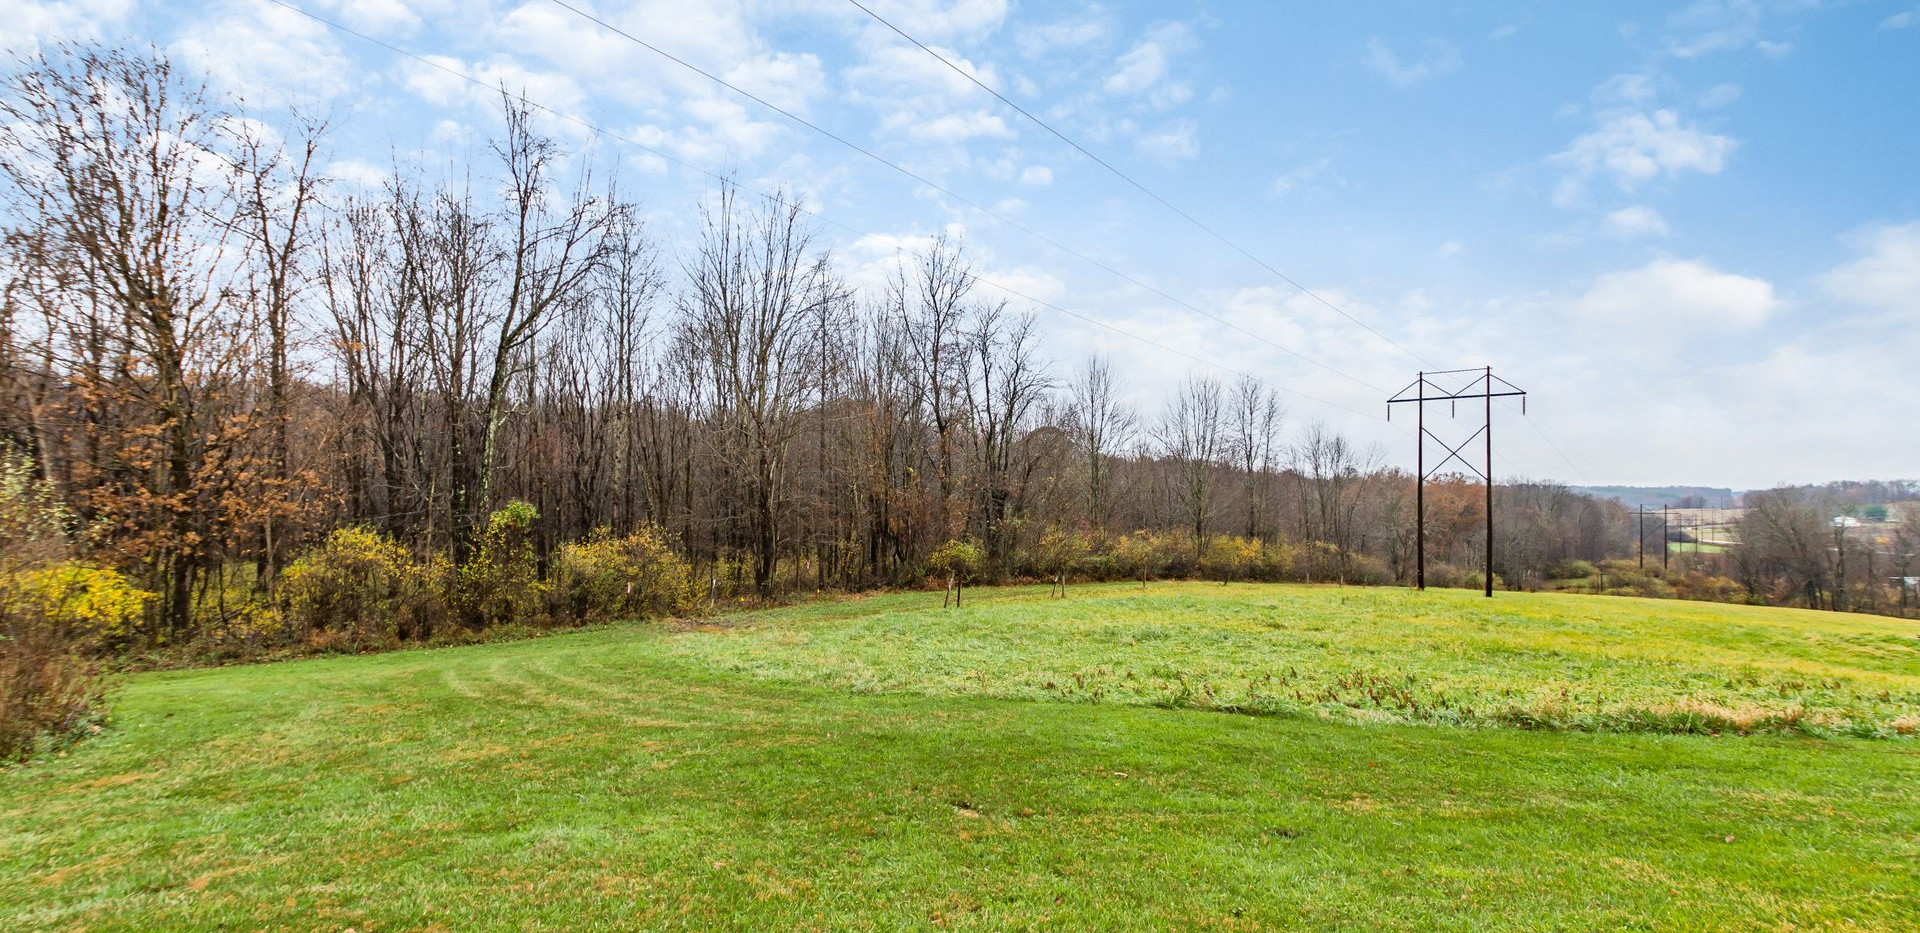 [045] 10563 Wesley Chapel Rd, Mt Perry,